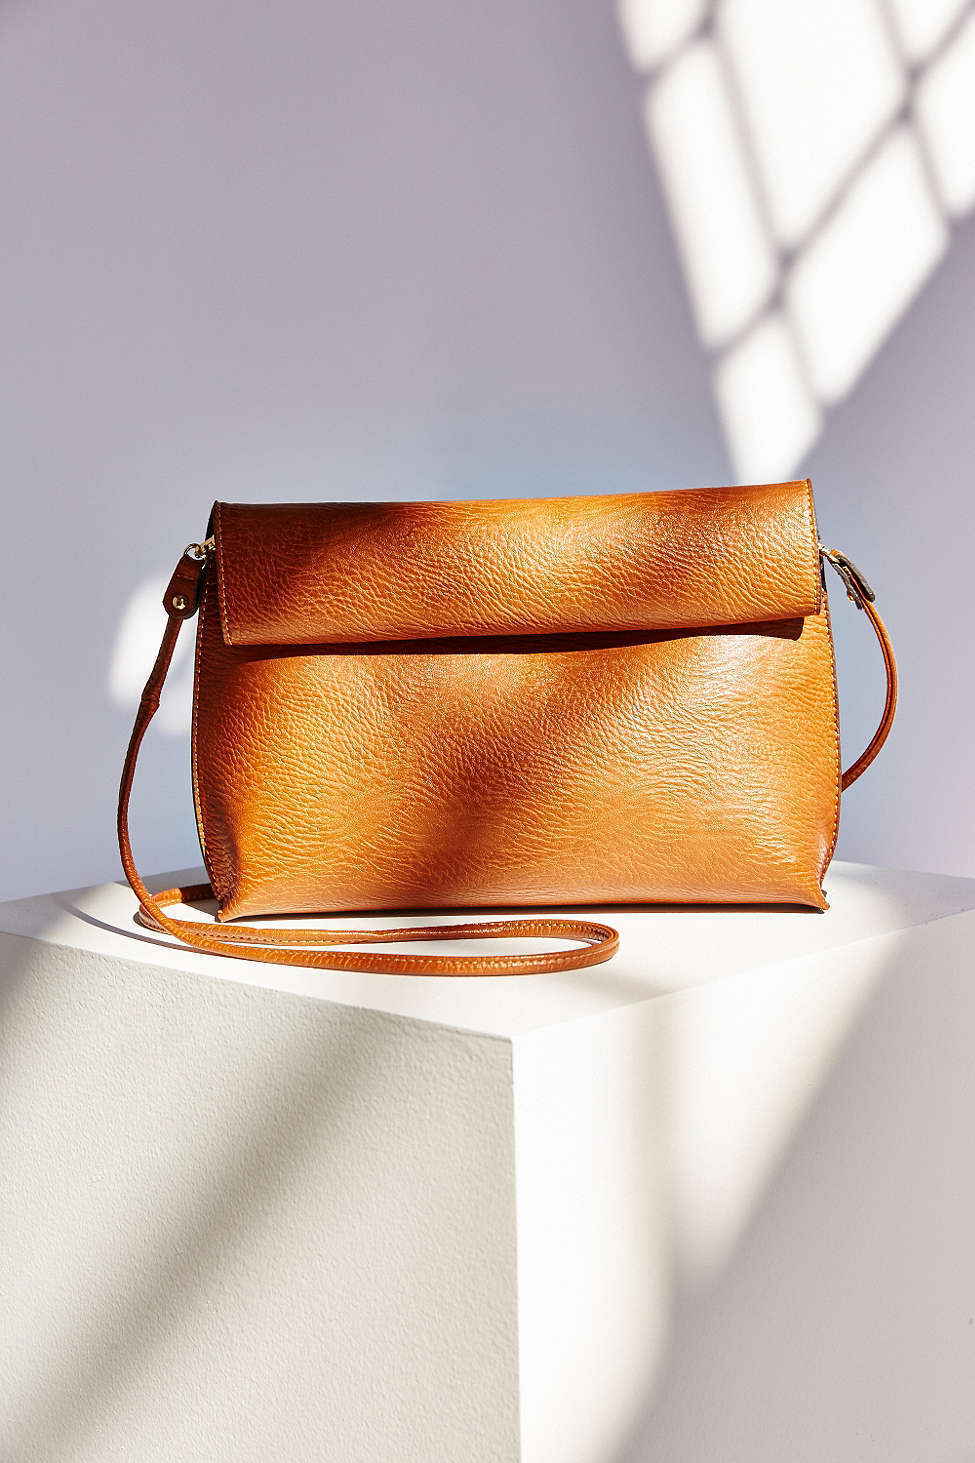 送込み_UO*Silence + Noise / Roll Clutch Crossbody Bag 各色♪